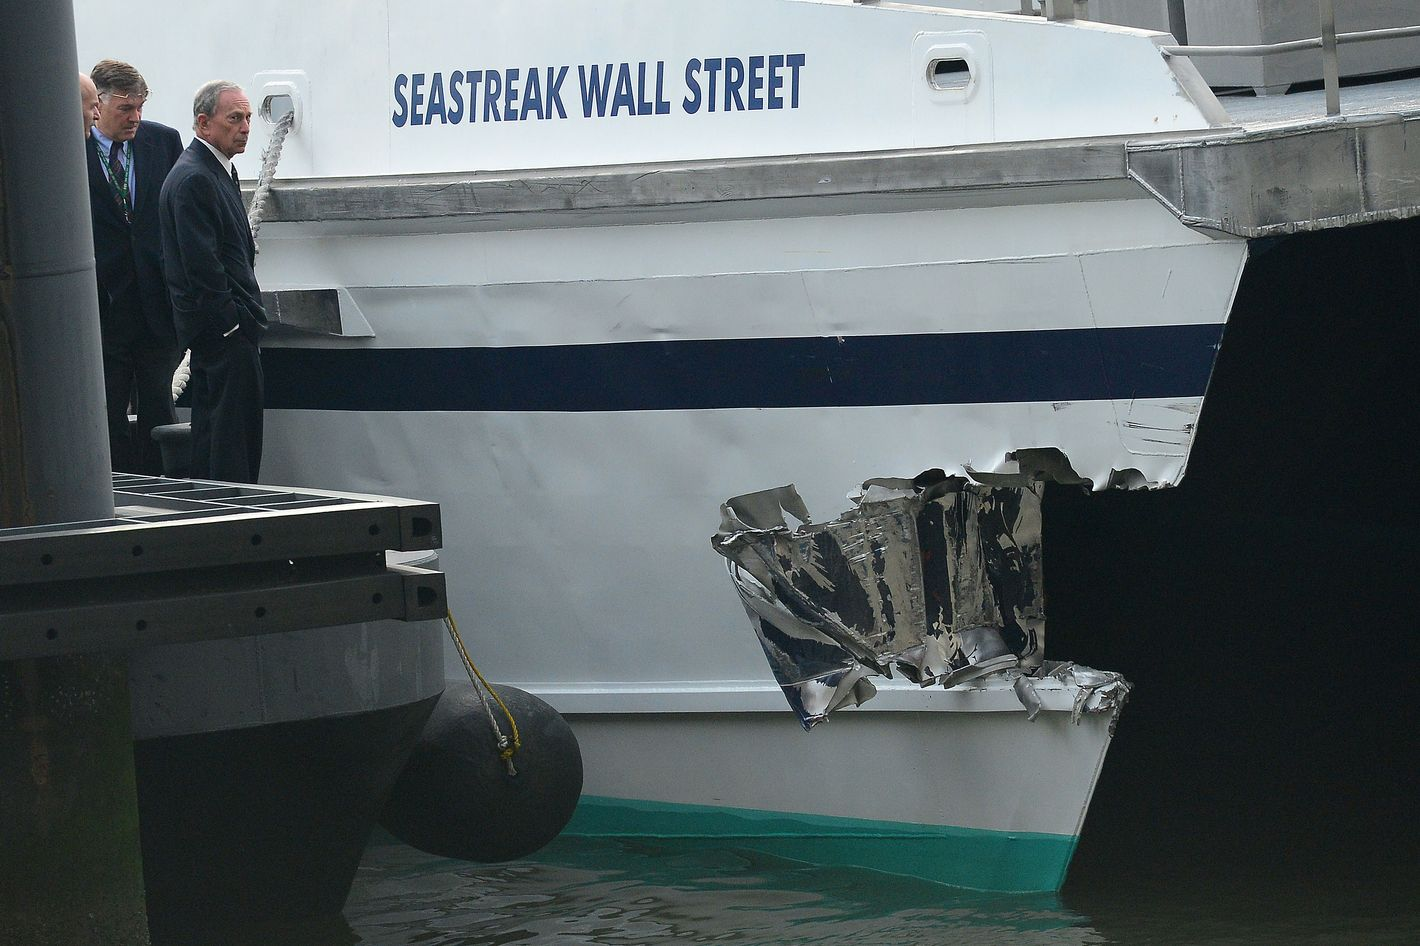 """New York Mayor Michael Bloomberg inspects the damage  after the commuter ferry slammed into a pier in New York, January 9, 2013.  About 50 people were injured when a rush-hour ferry packed with commuters smashed into a pier in New York City on Wednesday, firefighters said. The accident took place at 8:45 am (1345 GMT) on Pier 11 in the East River in lower Manhattan, not far from Wall Street, the New York Fire Department said. The ferry was arriving from New Jersey. """"We are assessing 50 patients on the scene right now. We don't know what kind of injuries they have,"""" an NYFD spokeswoman said."""